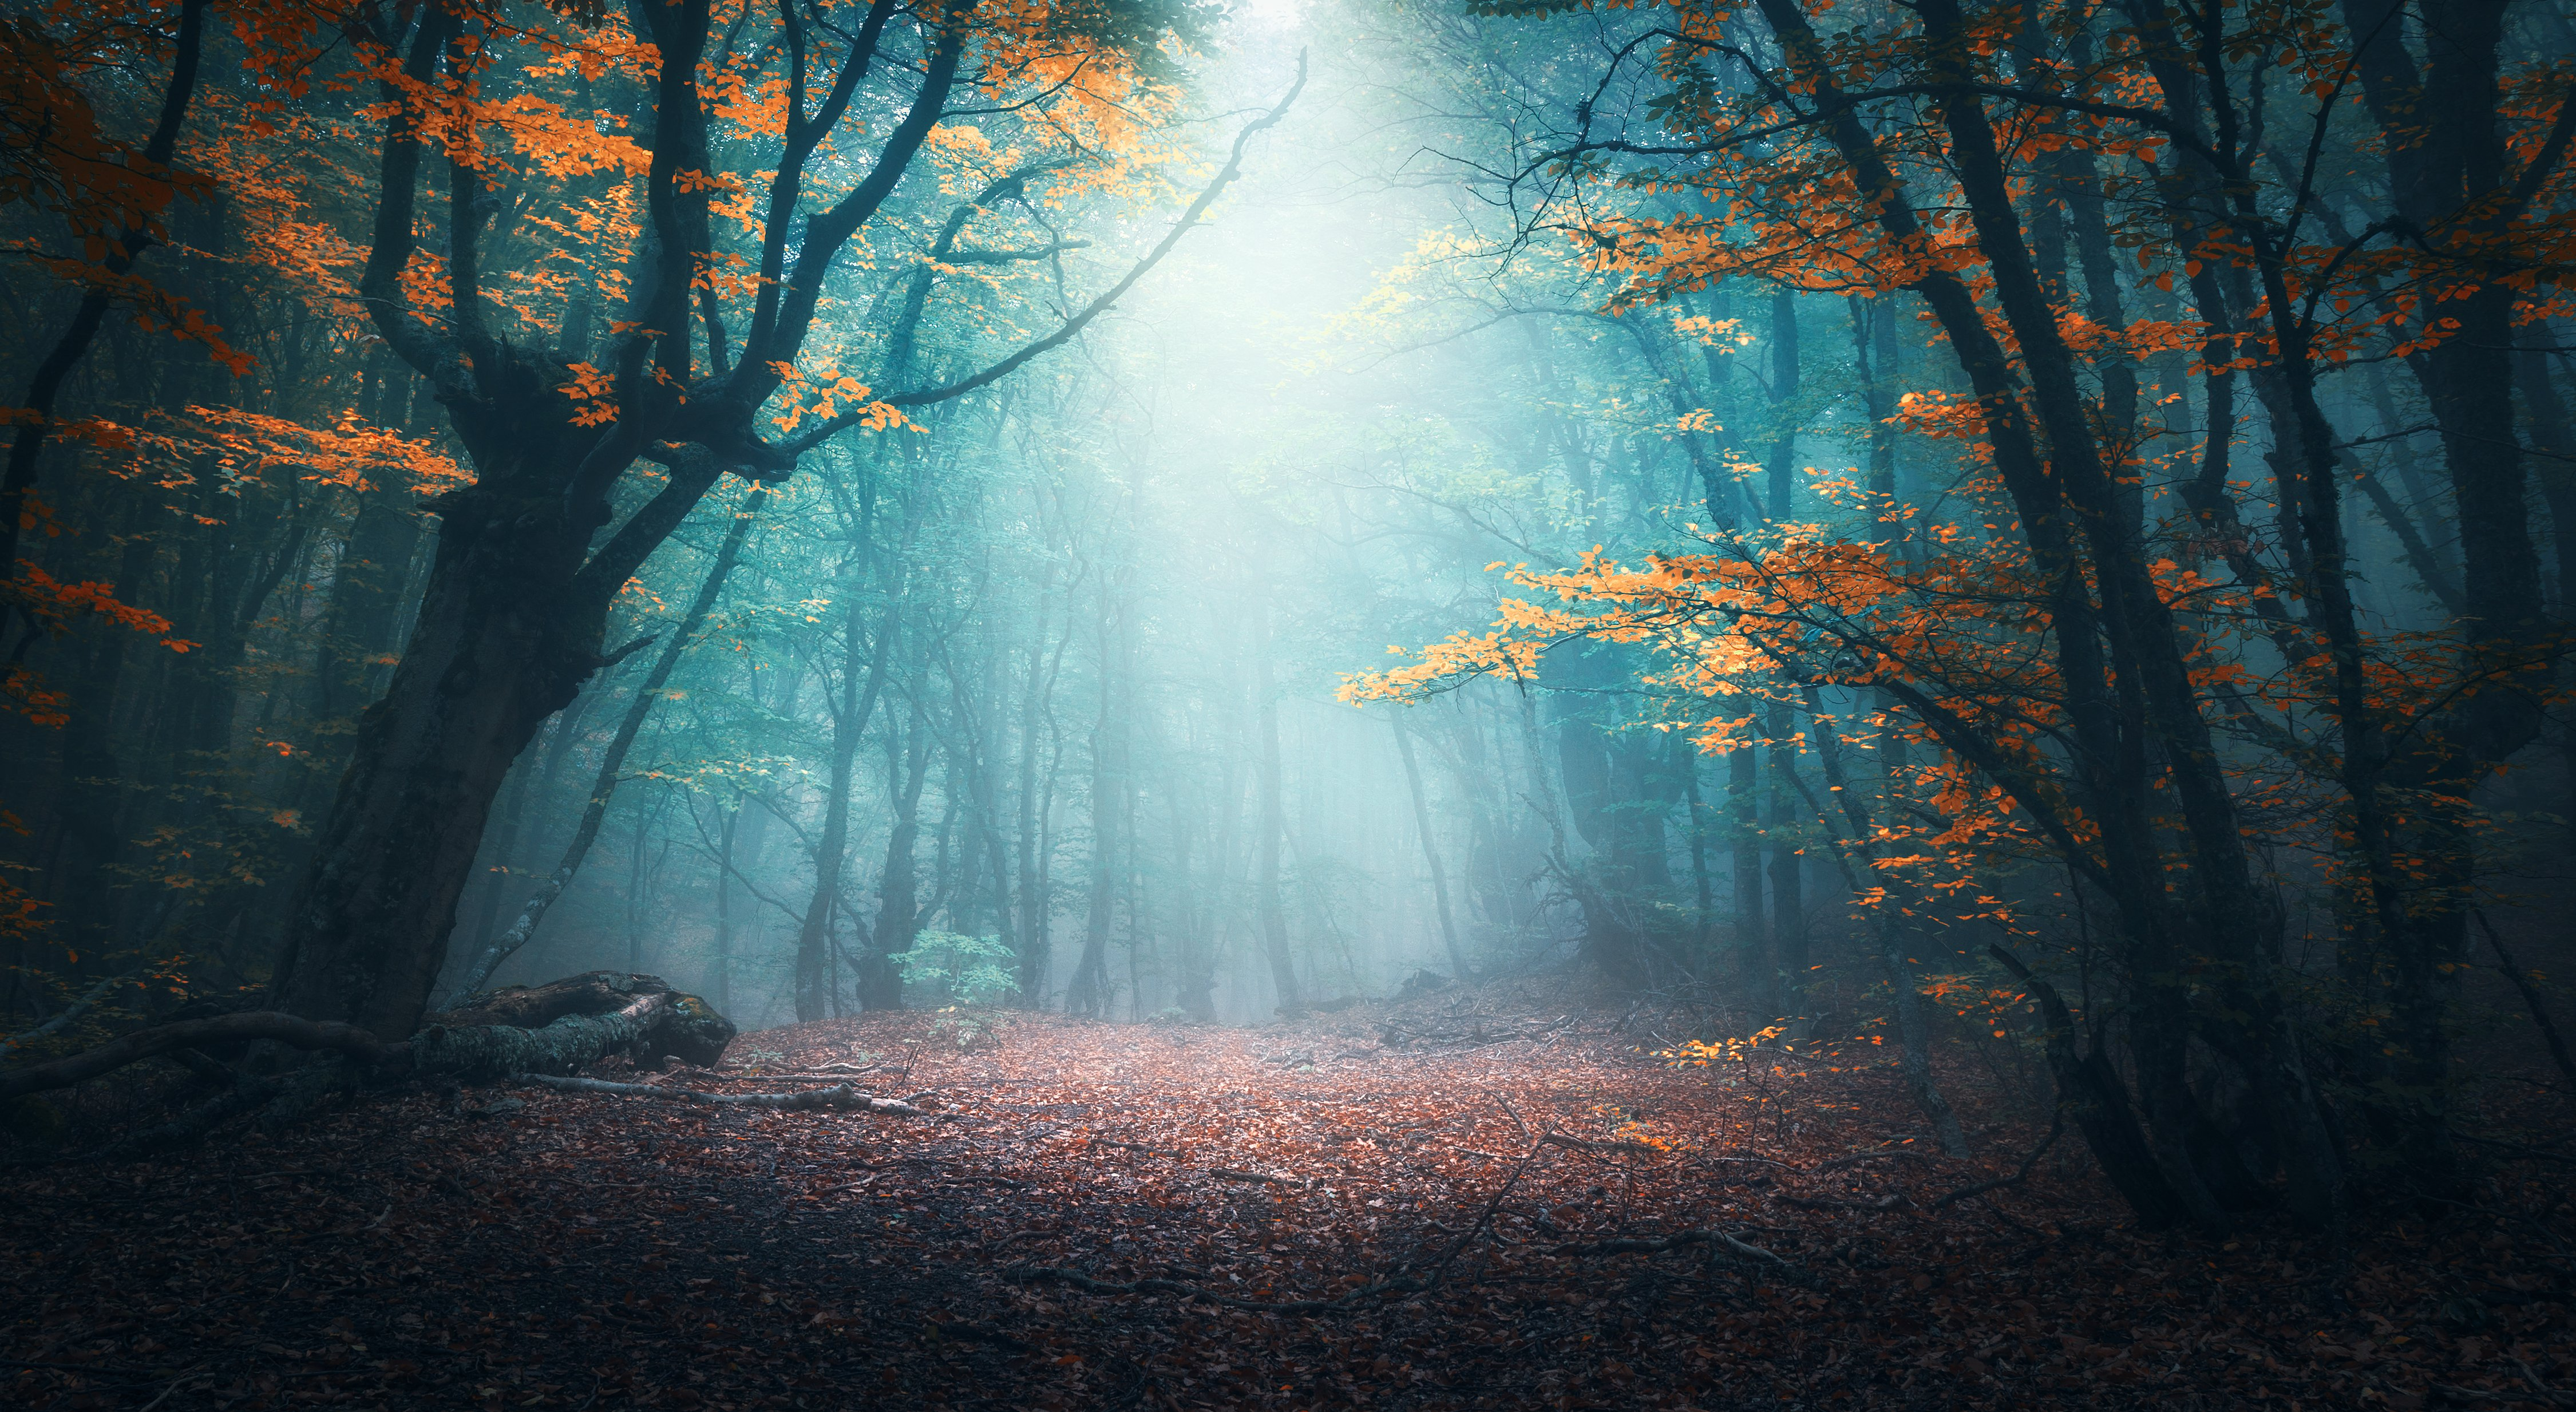 A scary forest | Shutterstock